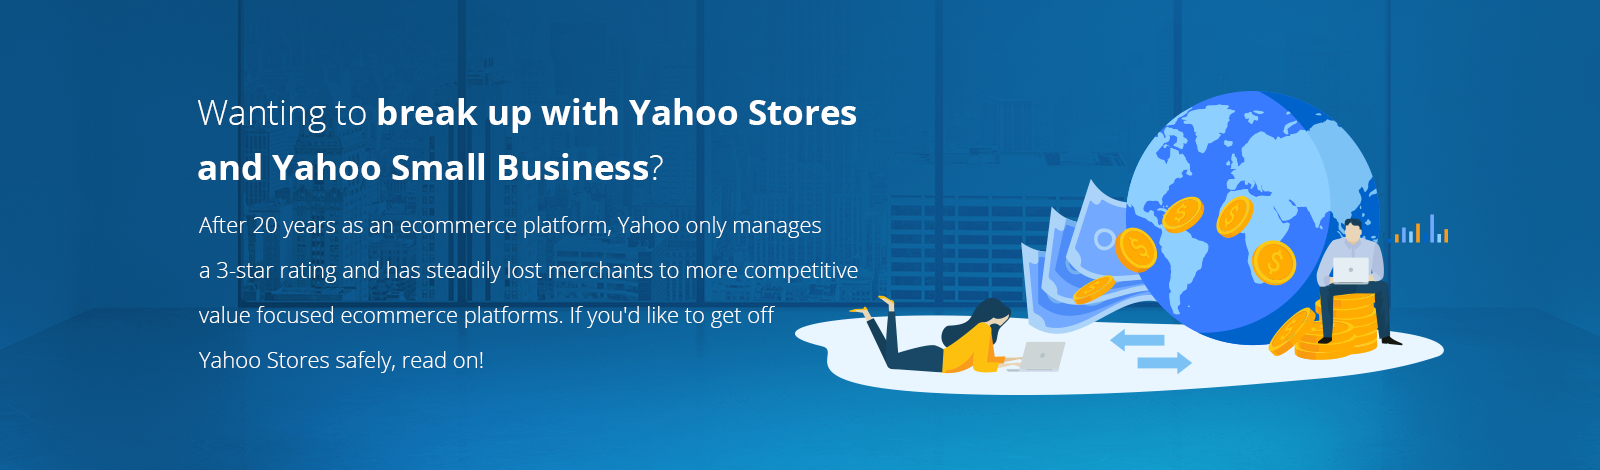 Yahoo Stores migration